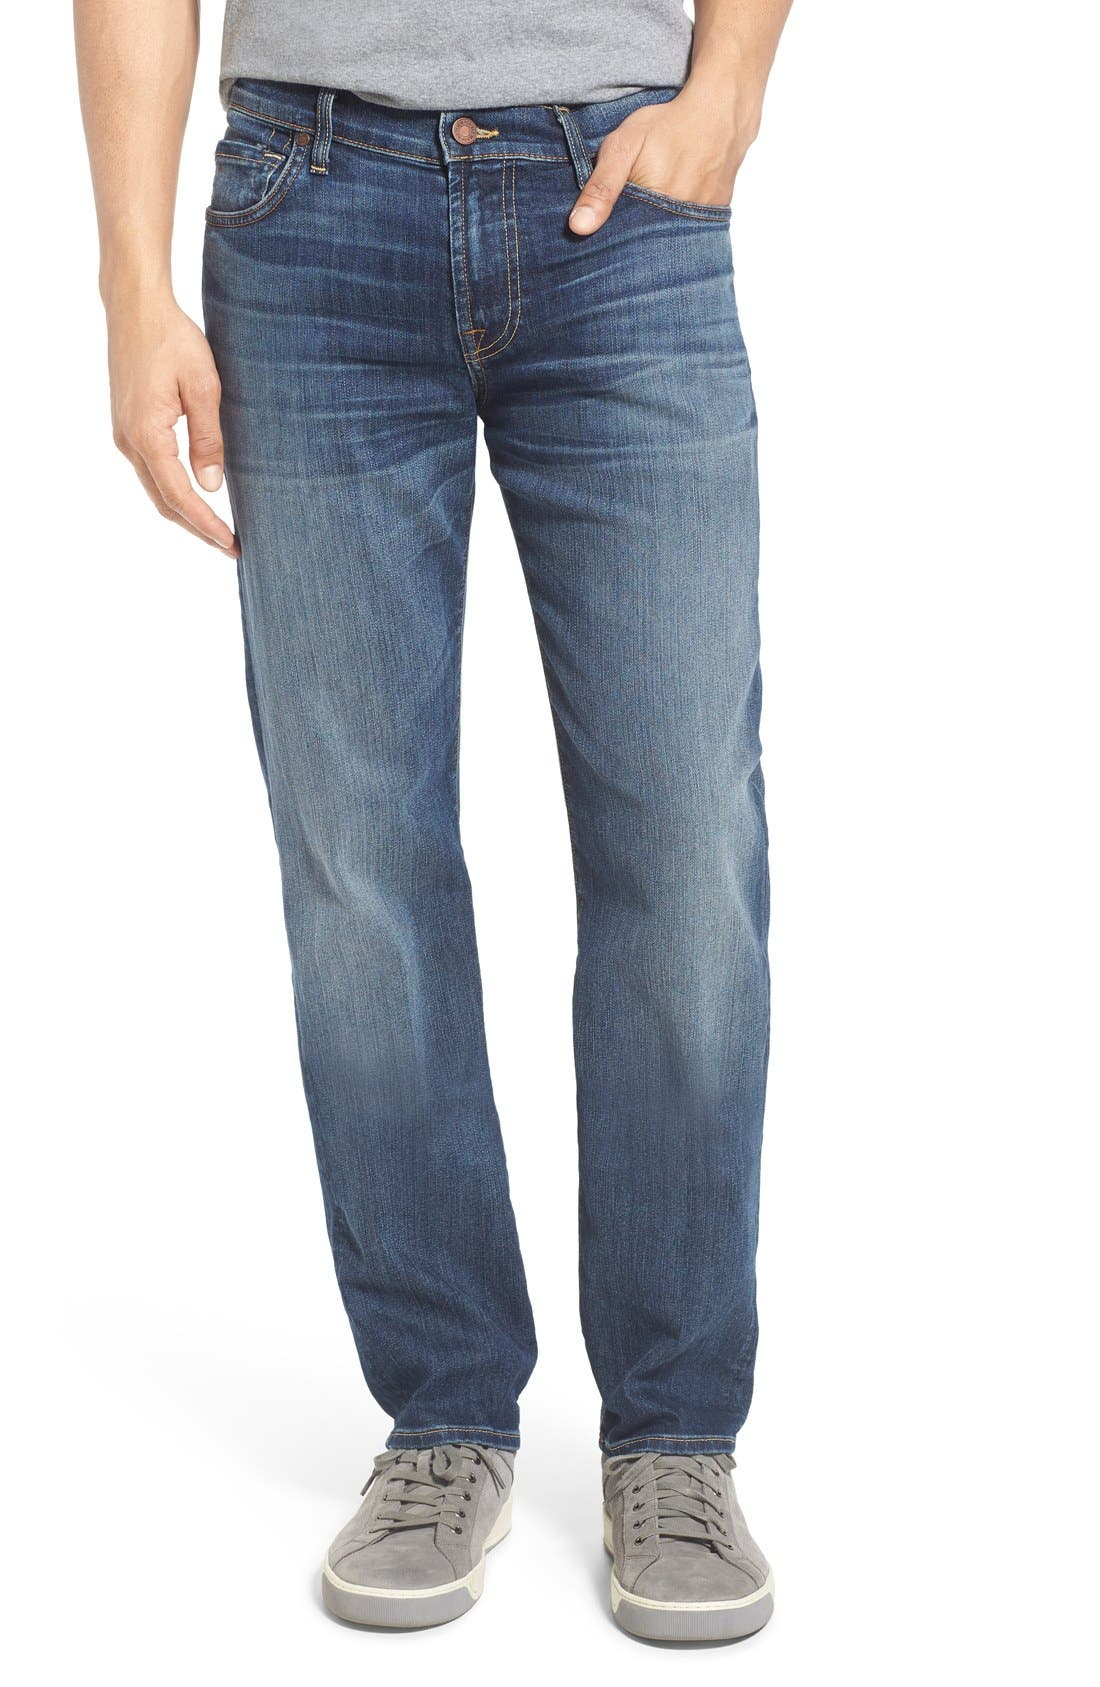 Slimmy Airweft Slim Fit Jeans,                         Main,                         color, 401